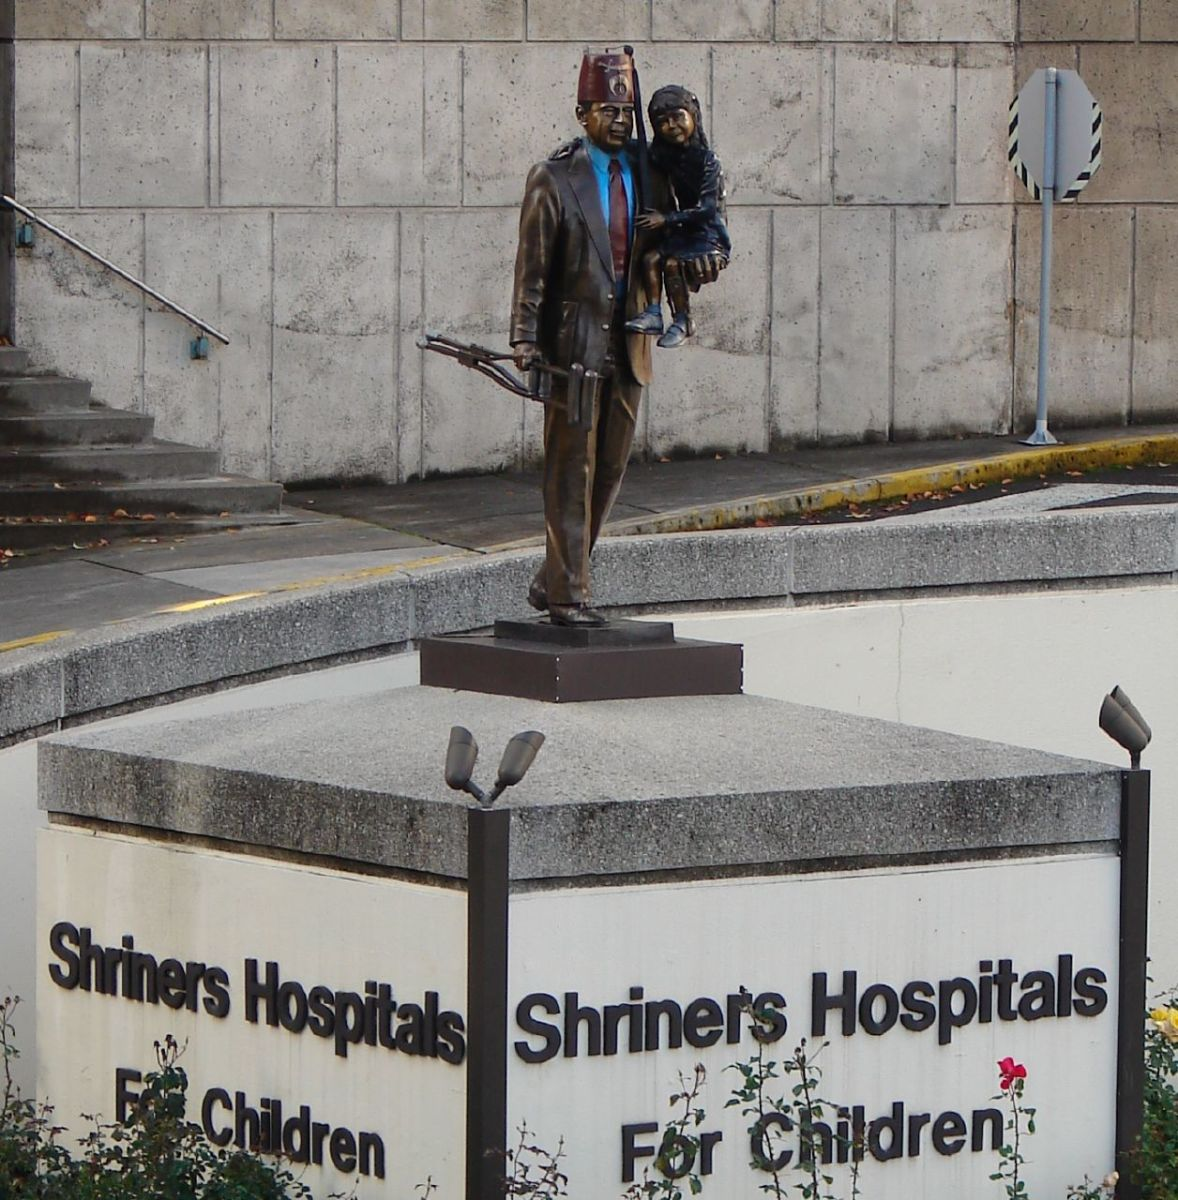 My Experience as a Patient at Shriners Hospital for Children